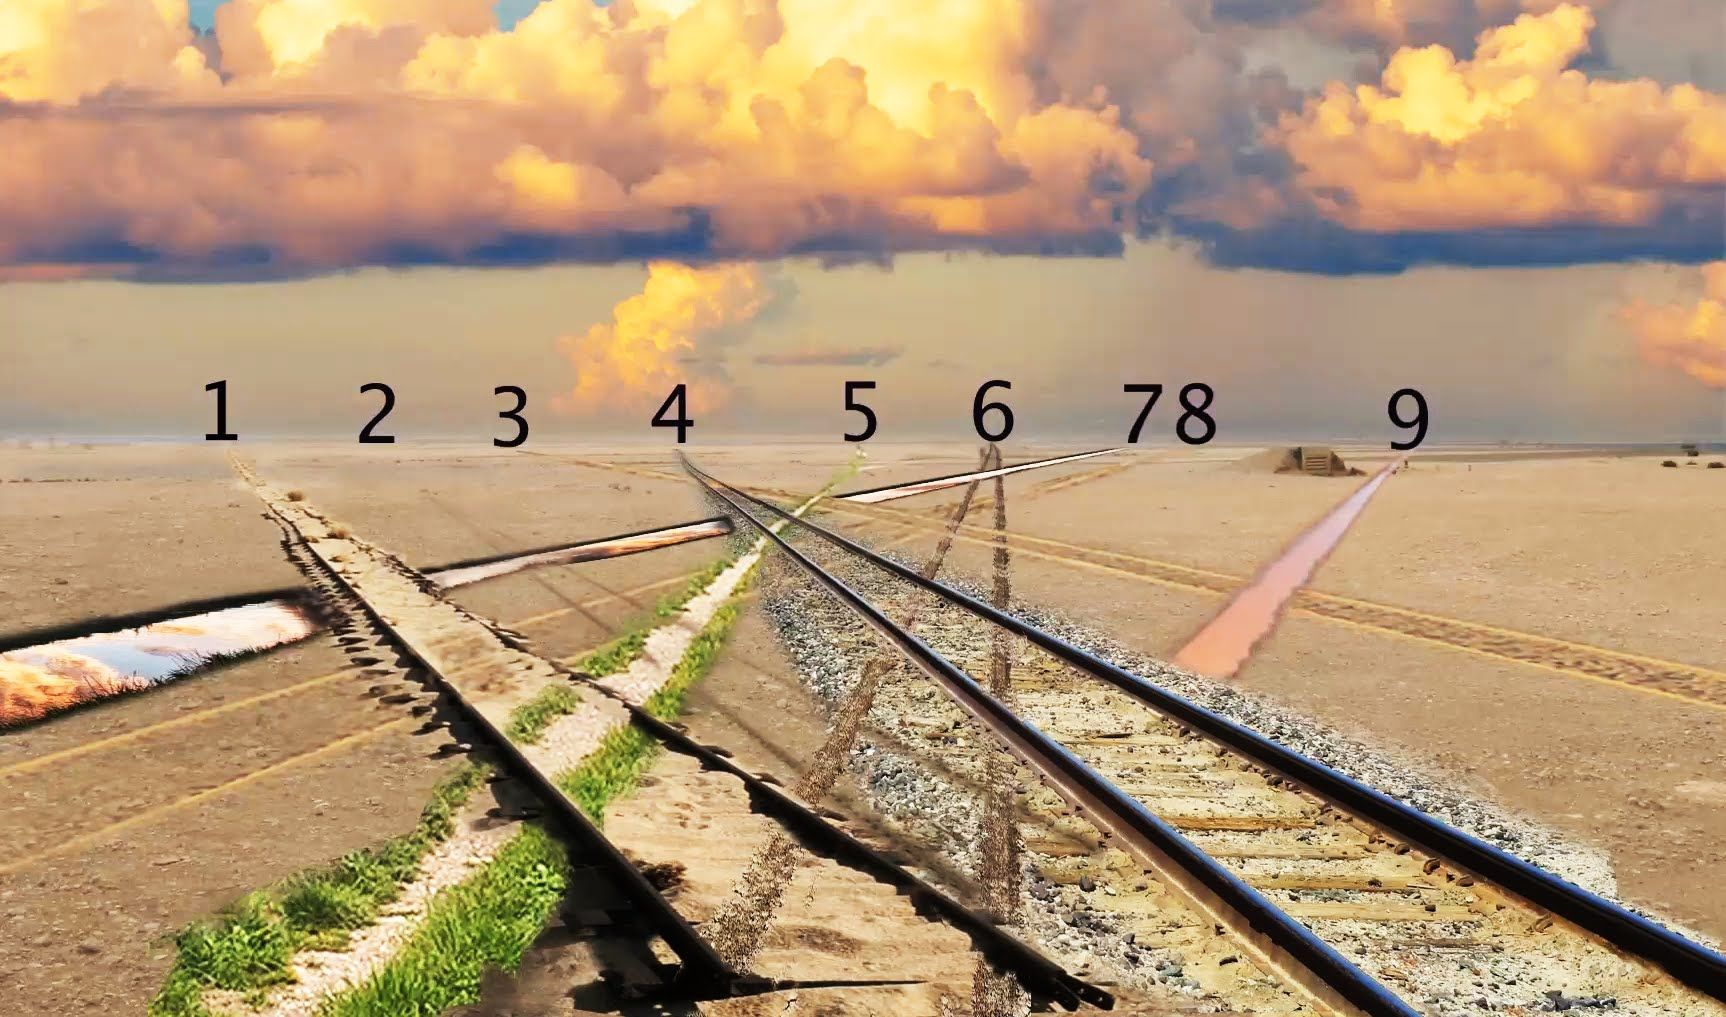 How to draw a 9 (nine) vanishing point perspective.